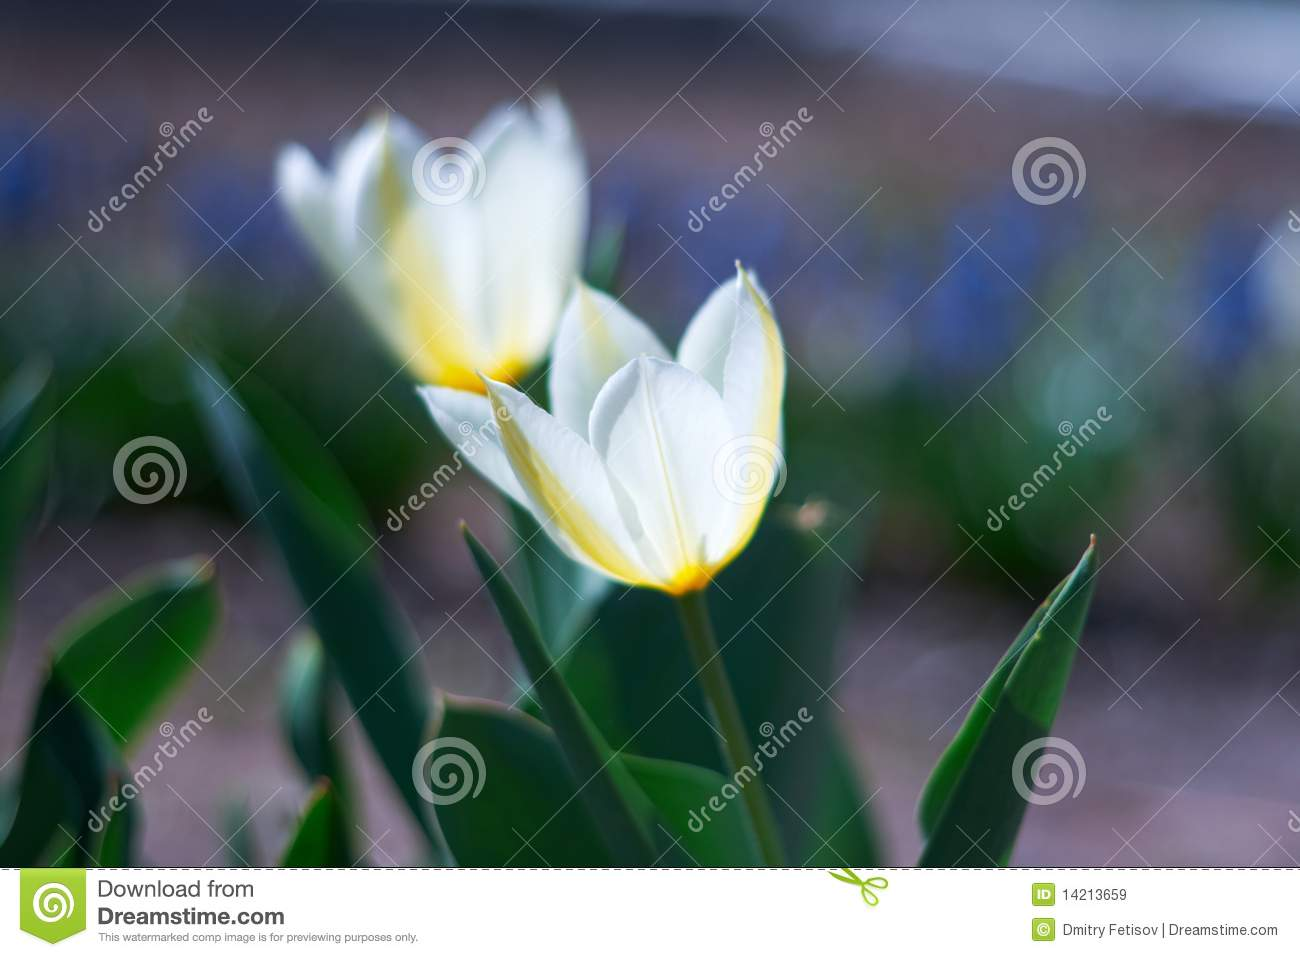 White spring a young tulip